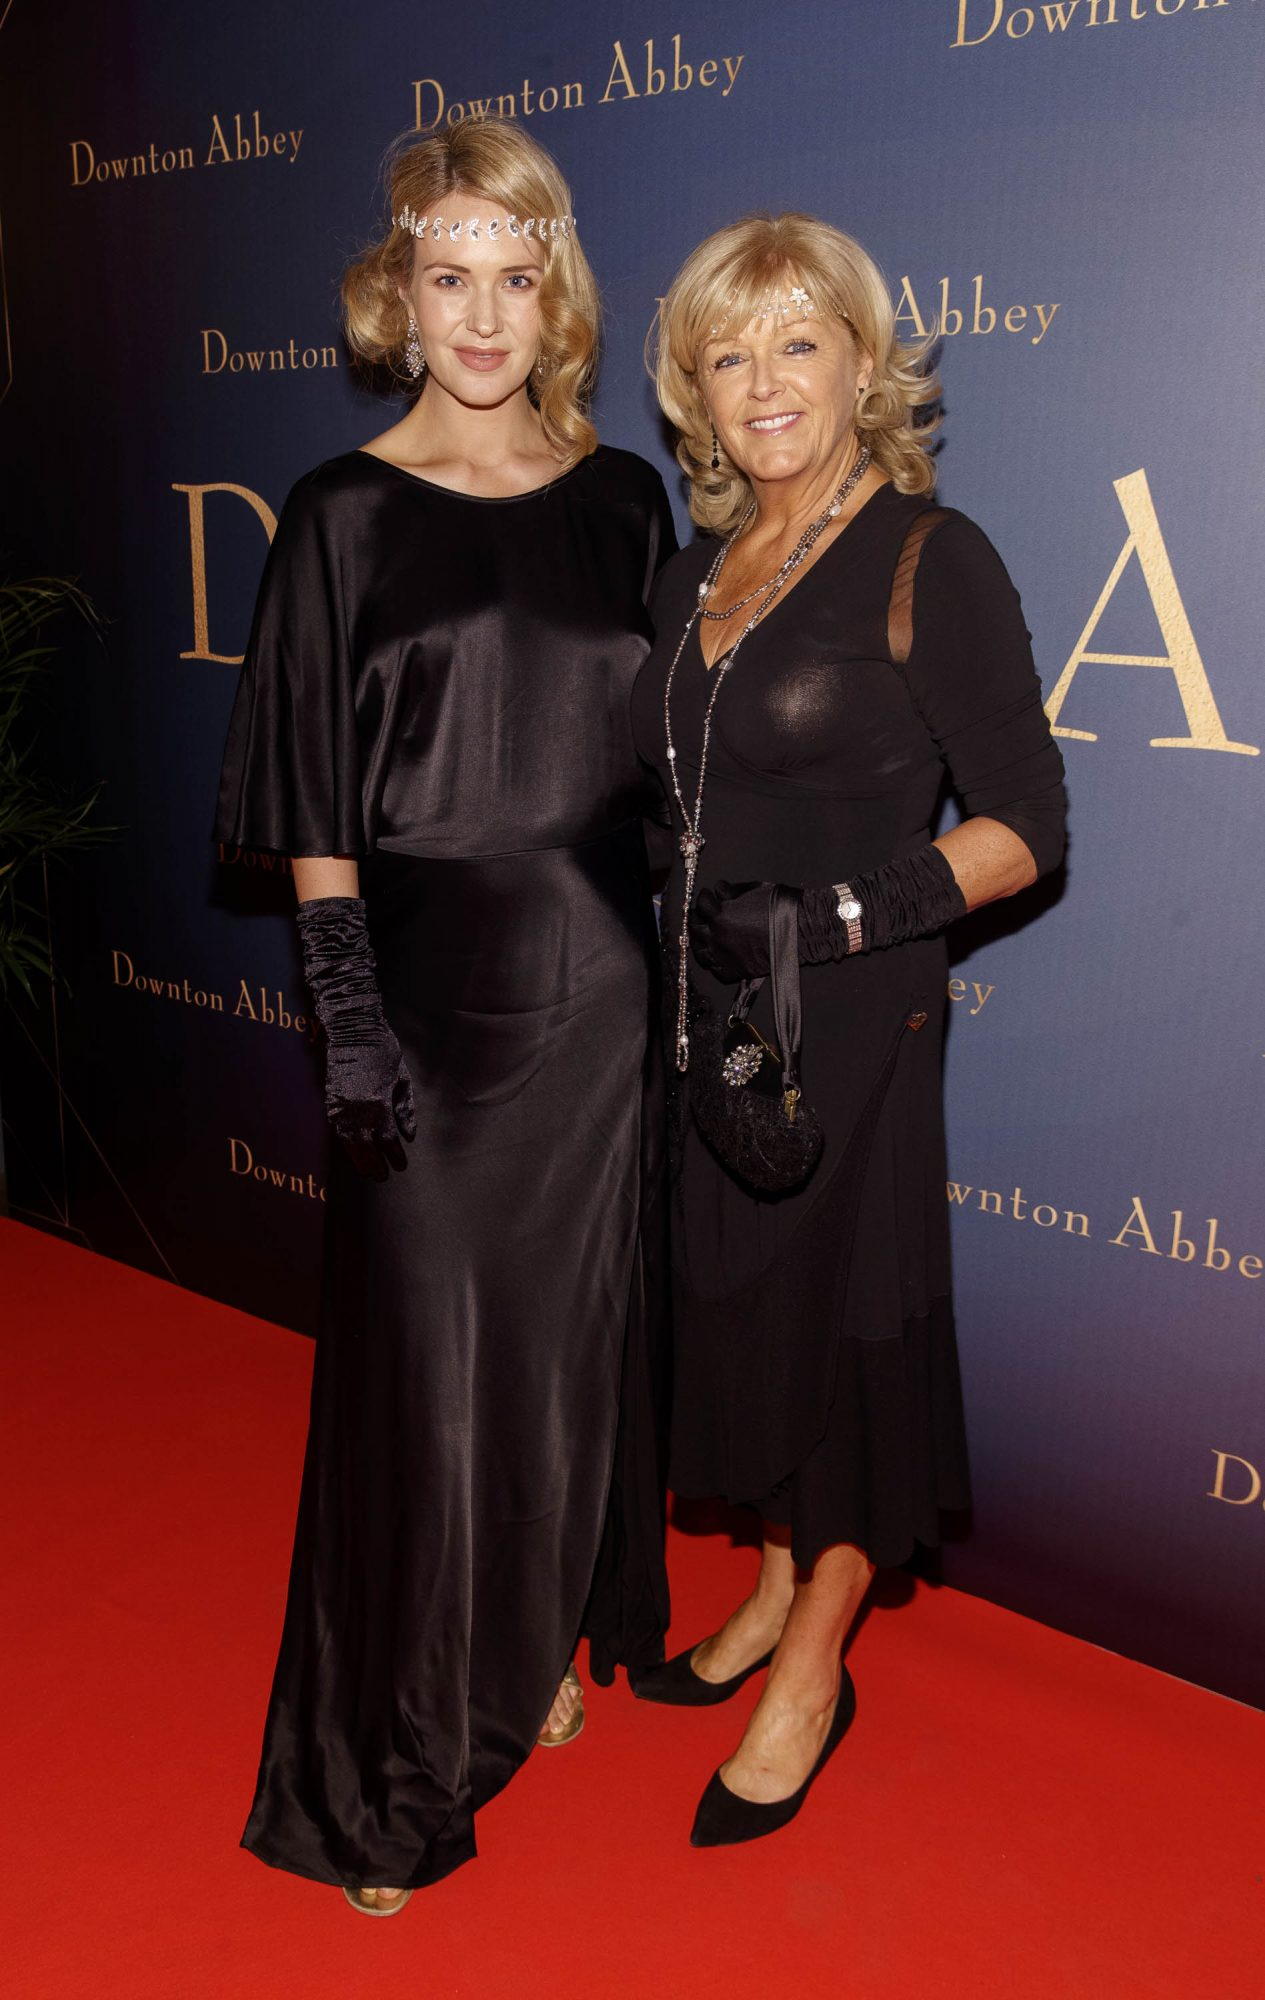 Aoibhin Garrihy and mother Clare pictured at the Universal Pictures Irish premiere screening of DOWNTON ABBEY at The Stella Theatre, Rathmines. Releasing in cinemas across Ireland from this Friday September 13th, starring the original cast, the worldwide phenomenon DOWNTON ABBEY, becomes a grand motion picture event. Picture Andres Poveda